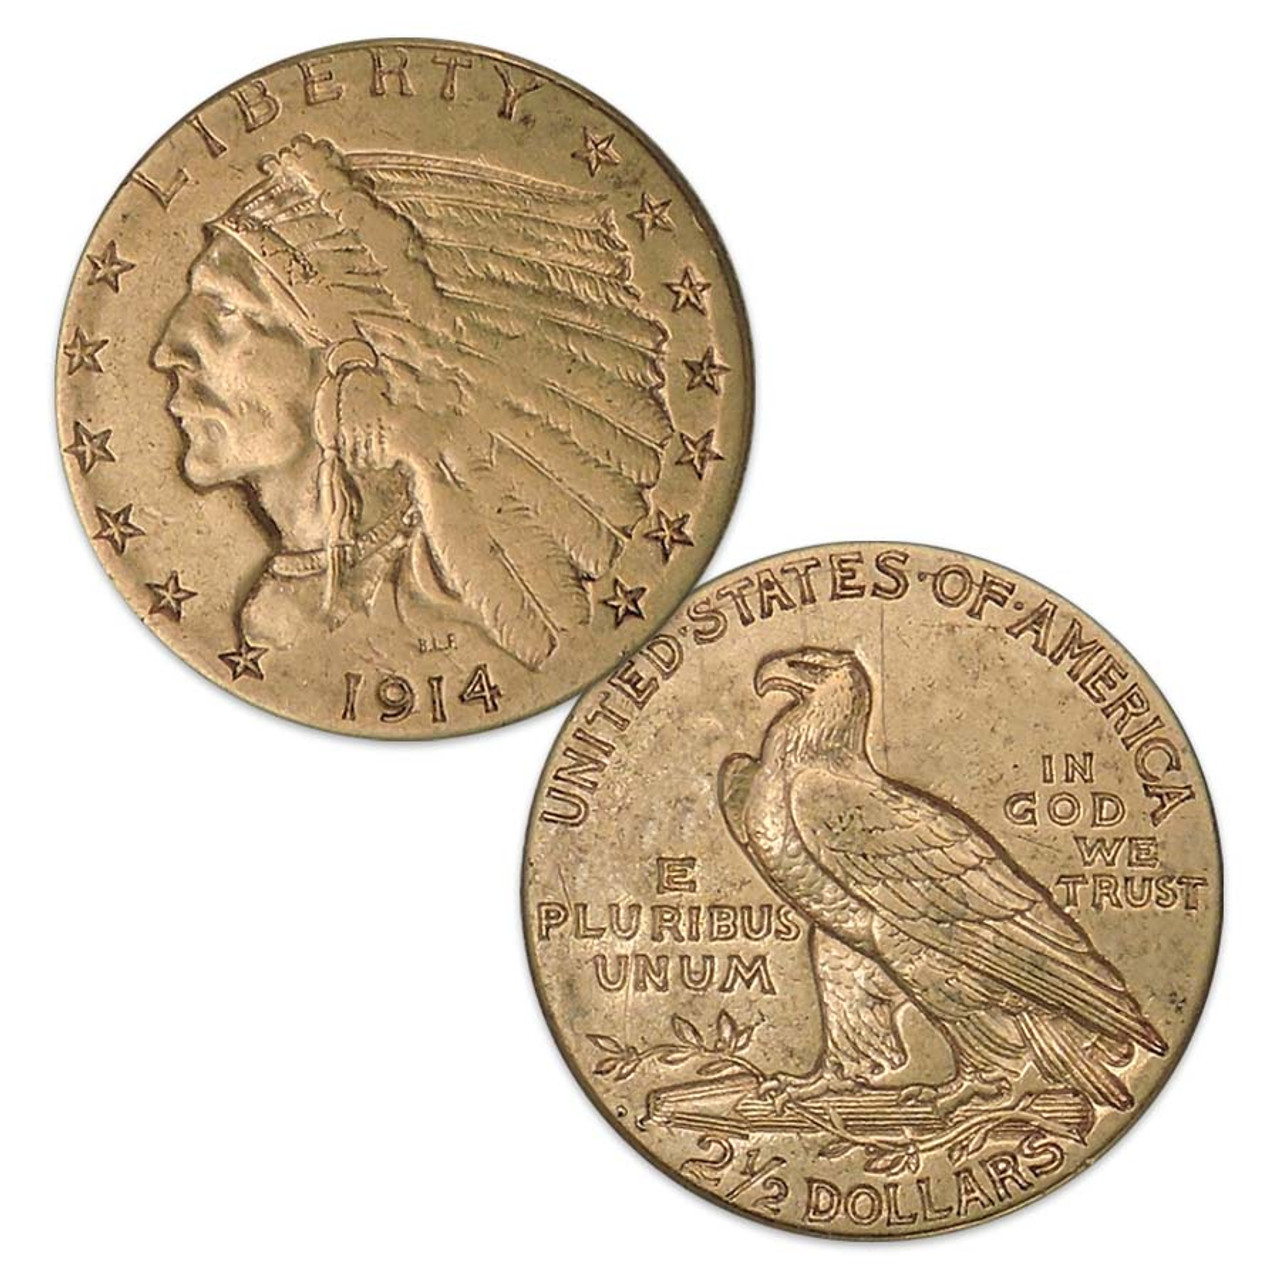 U.S. 1908-1929 Indian Head $2 1/2 Gold Extra Fine